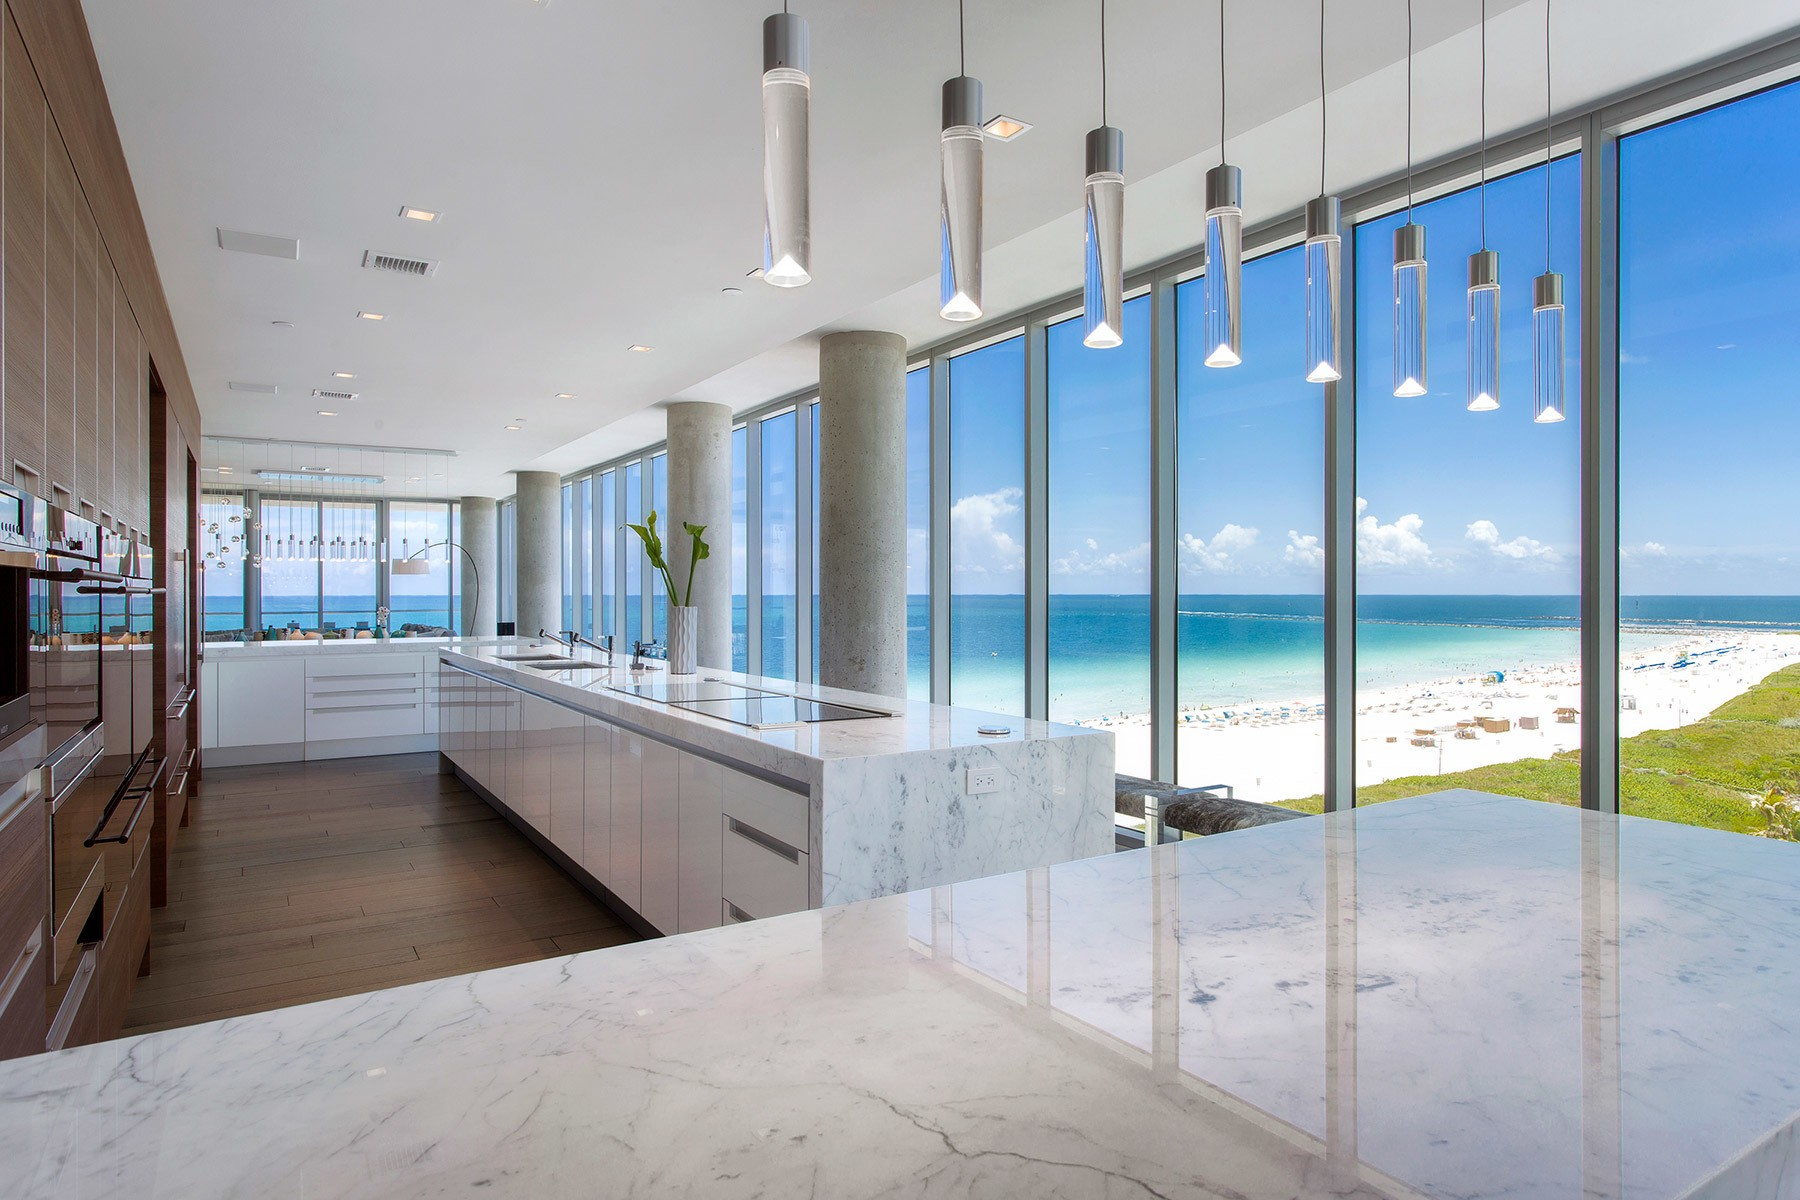 Miami Beach penthouse at 321 Ocean resurfaces for $35M